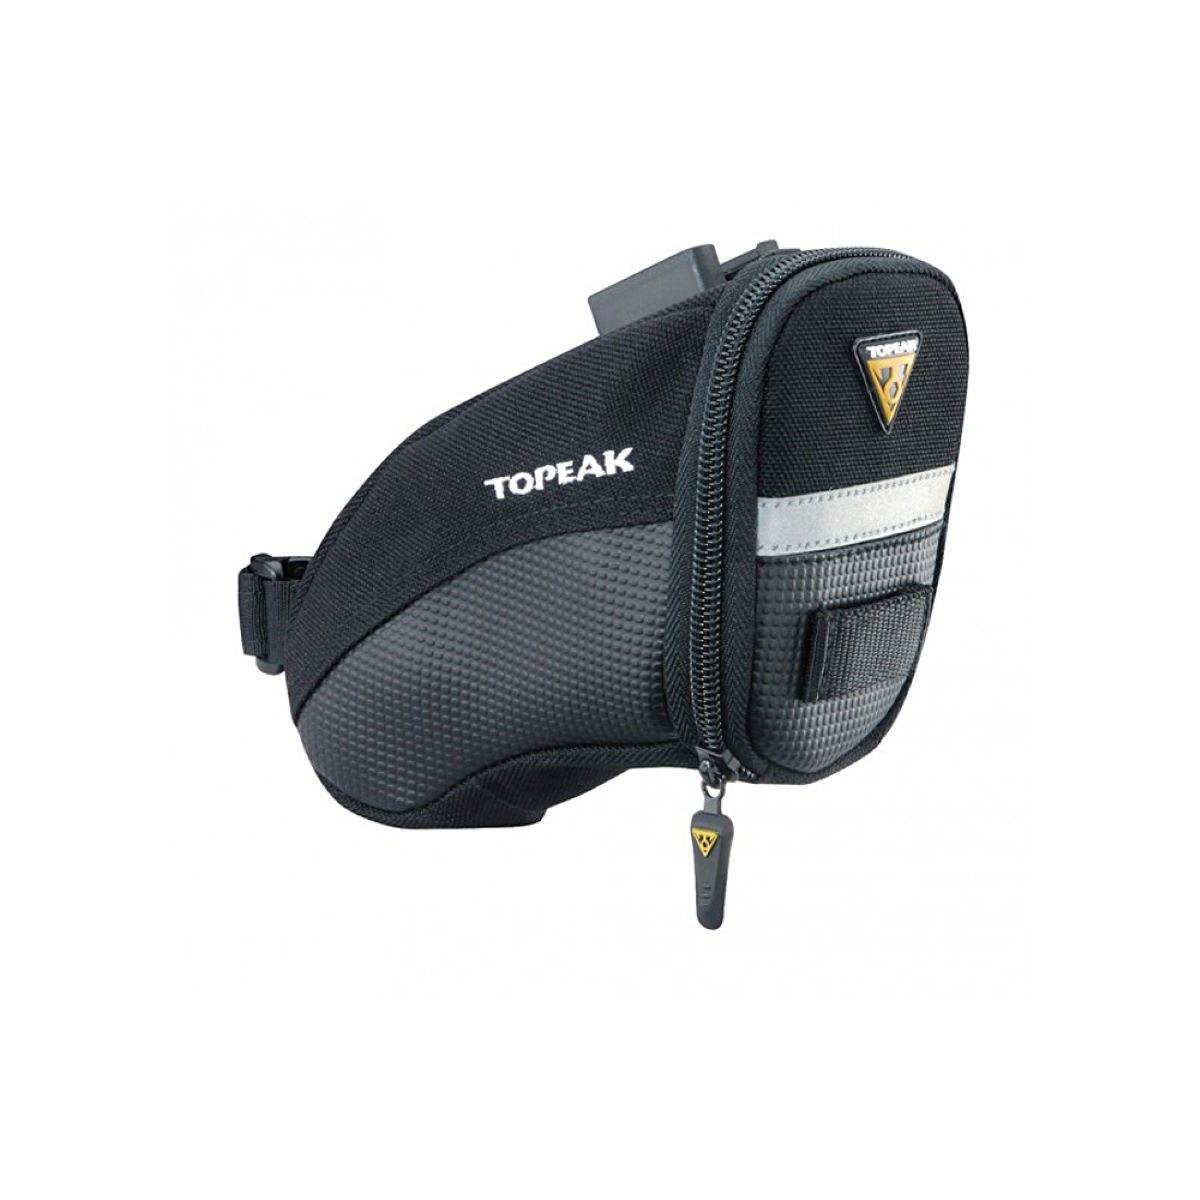 Topeak Topeak Aero Wedge (Clip On) Small Saddle Bag   Saddle Bags